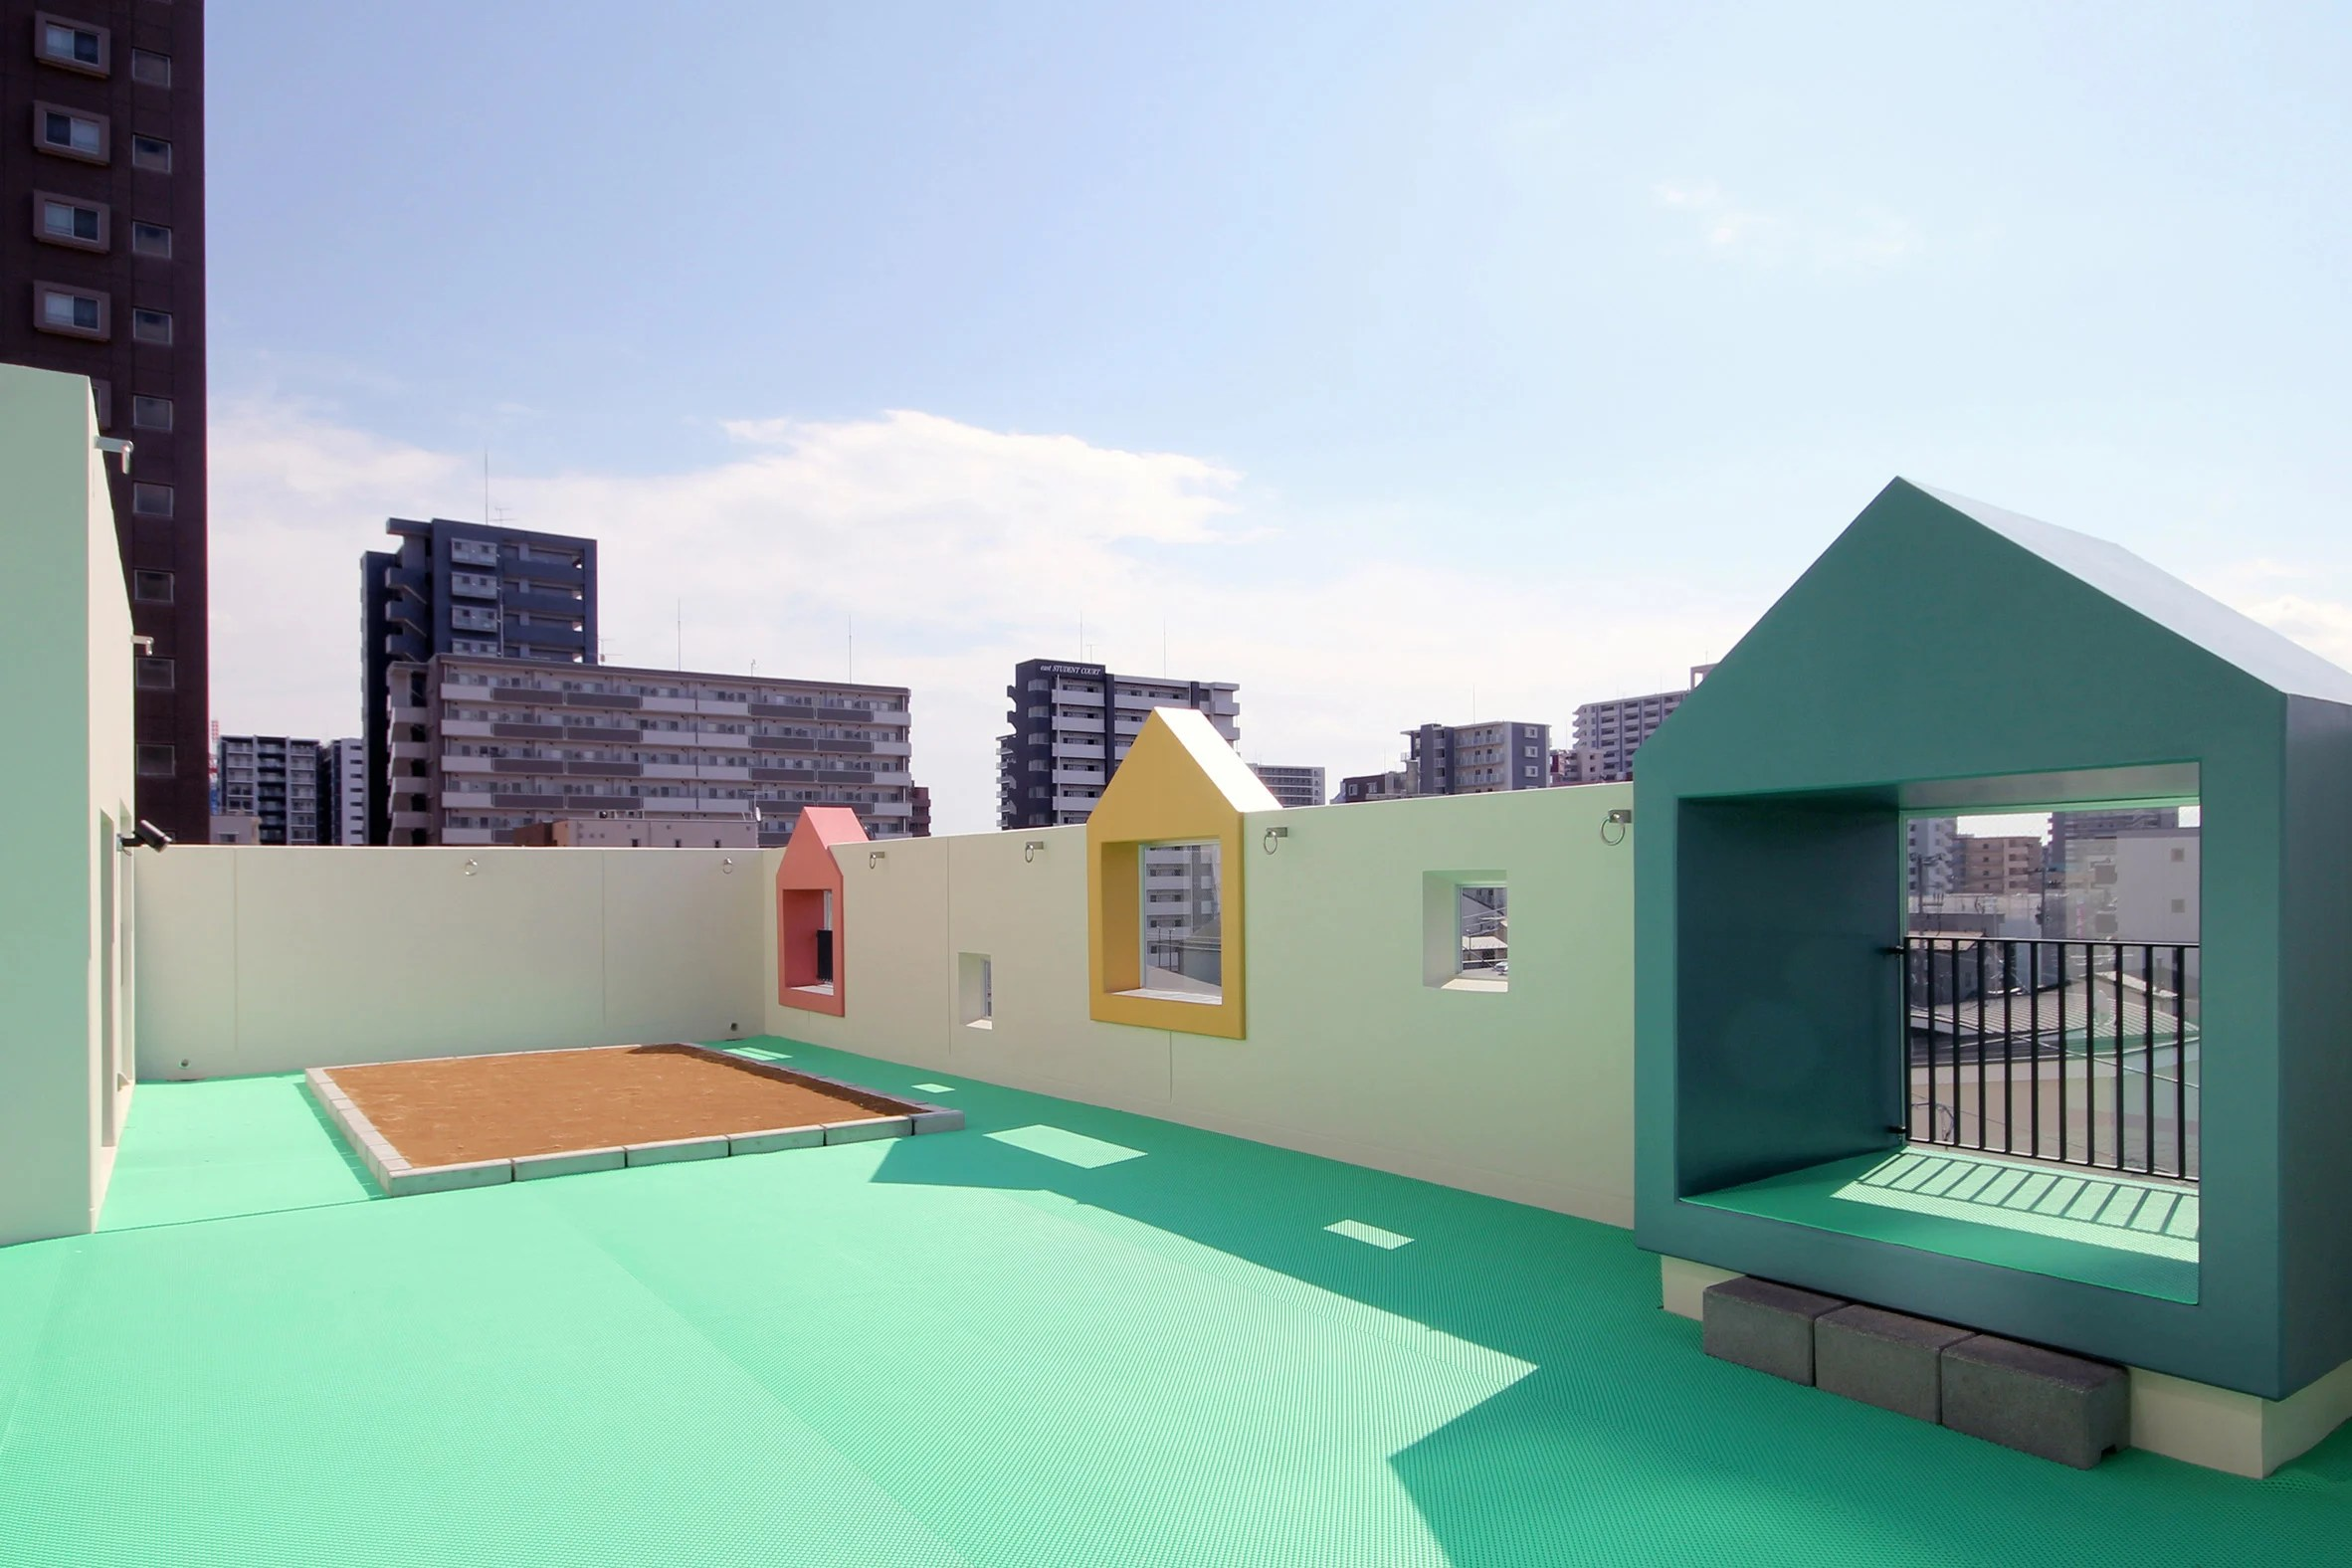 Colourful house-shaped boxes surround windows at nursery ...